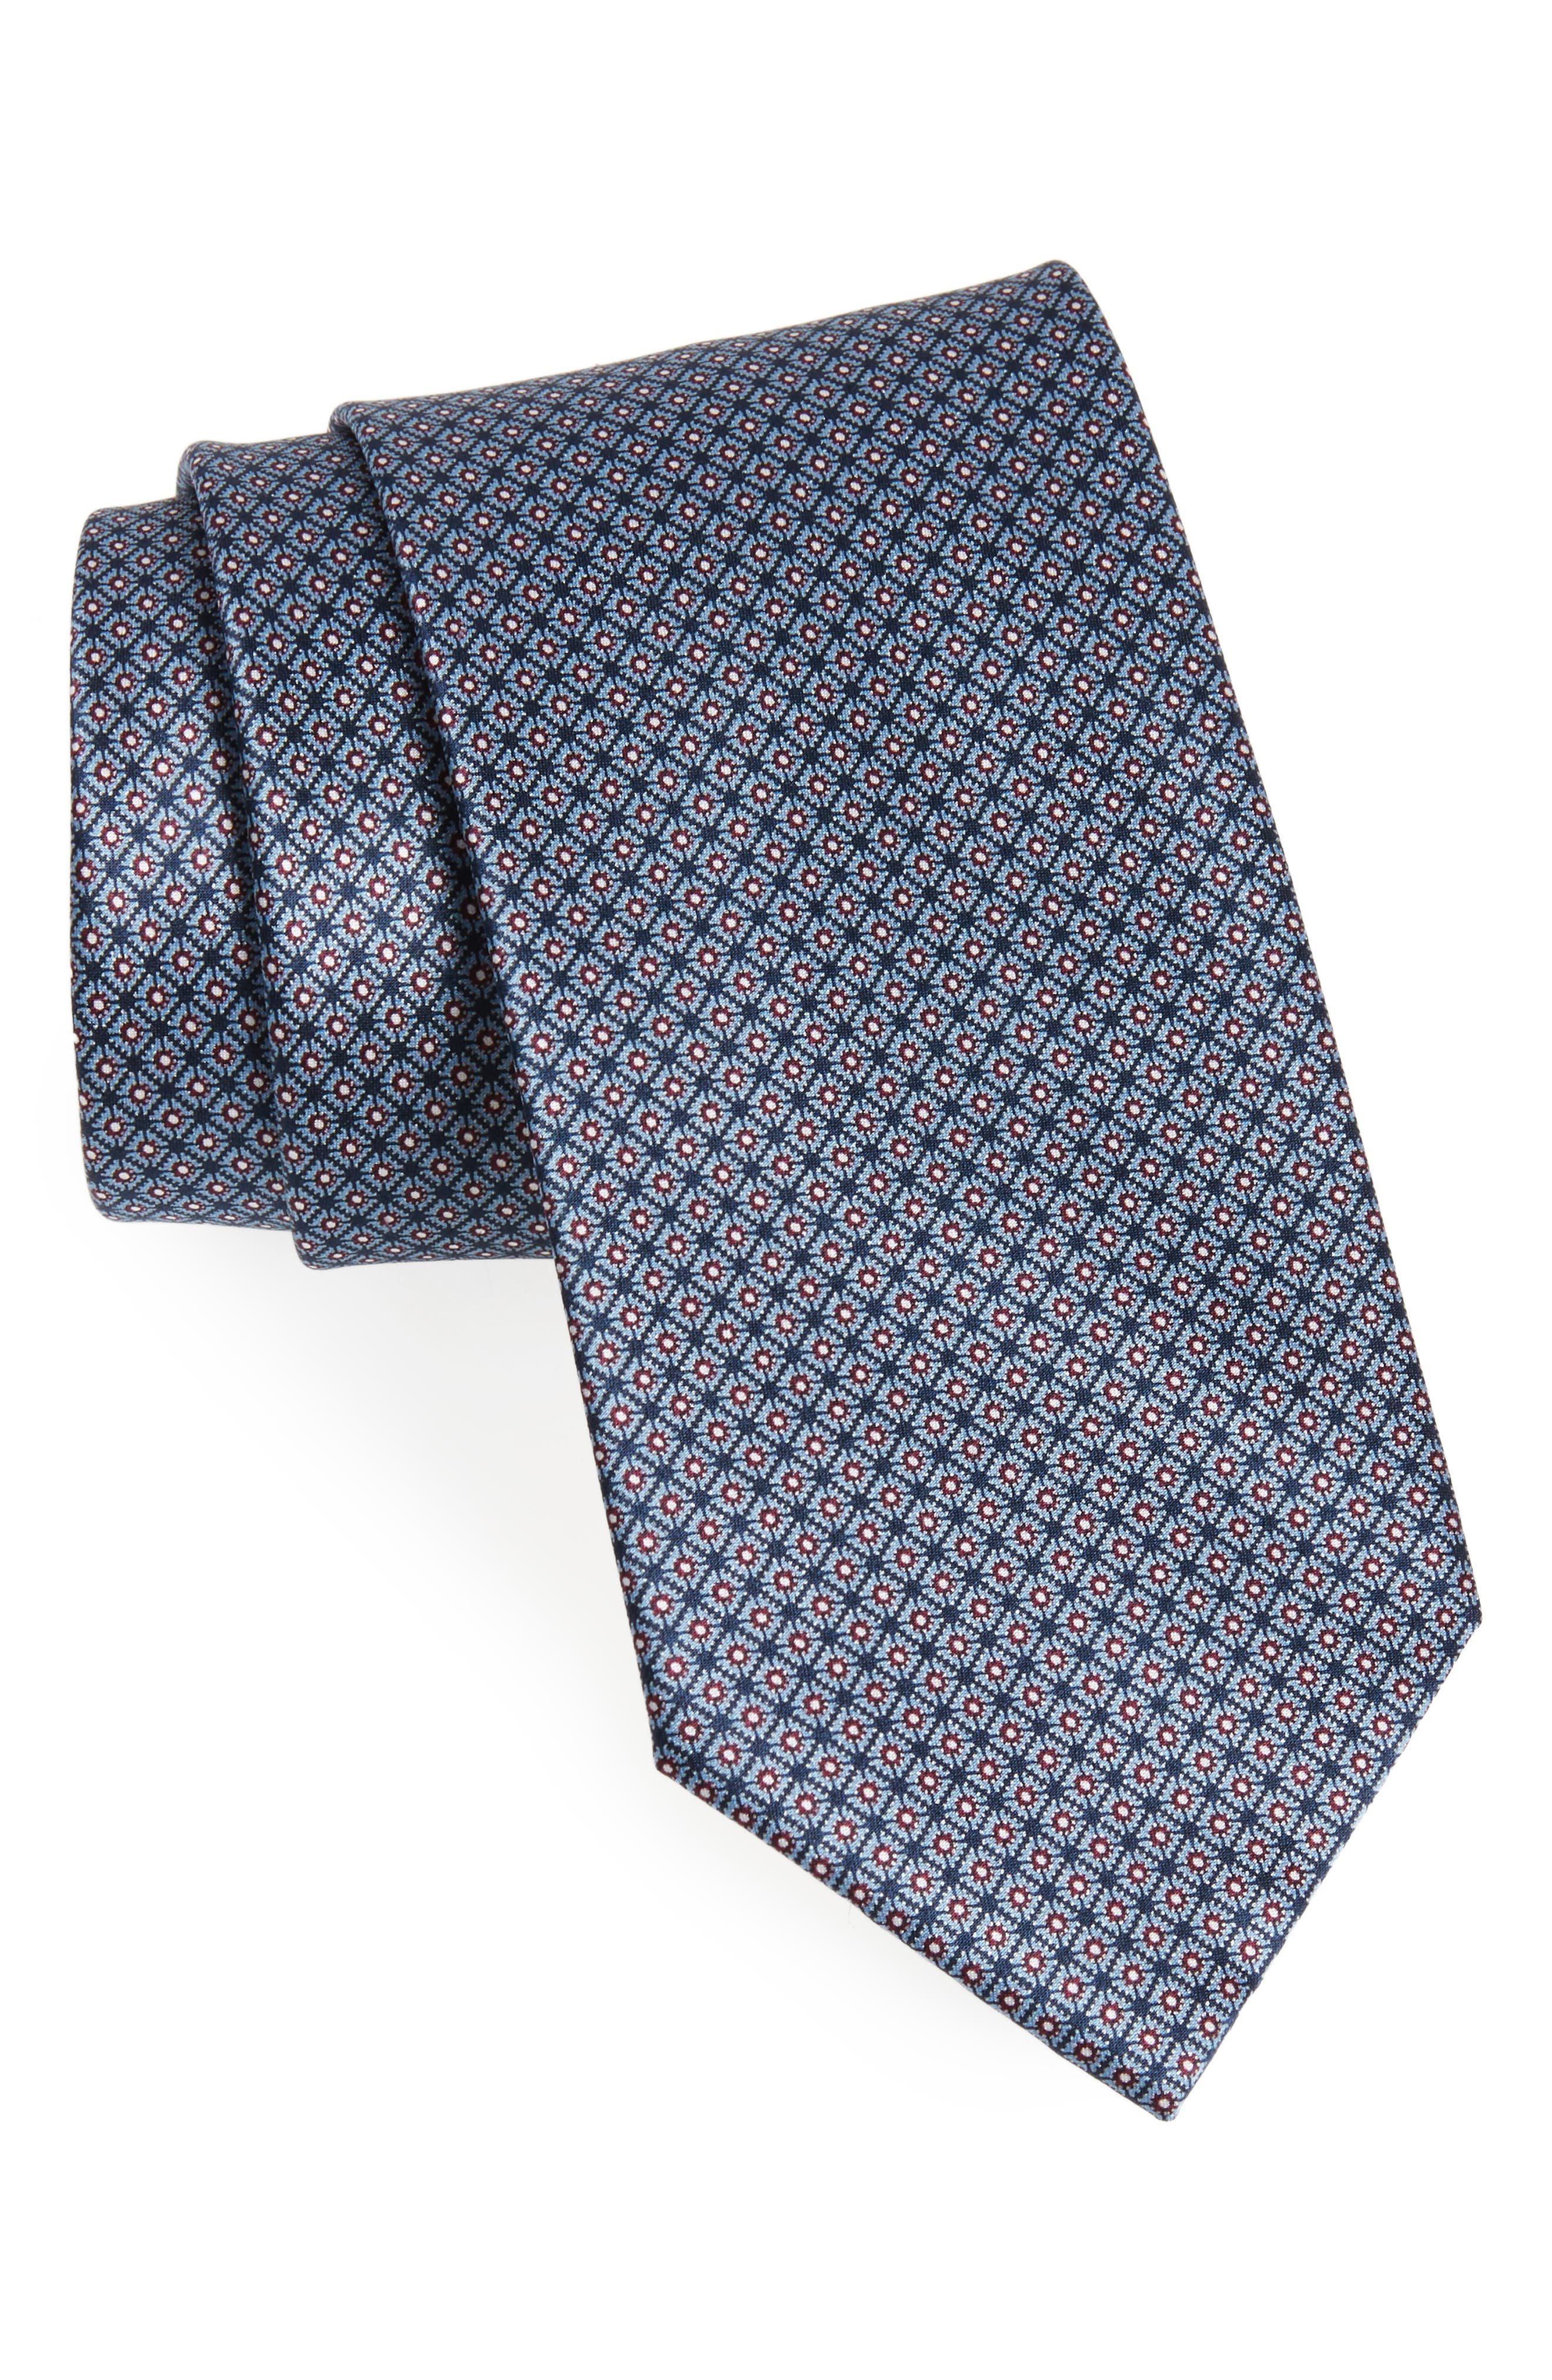 Neat Silk Tie,                             Main thumbnail 1, color,